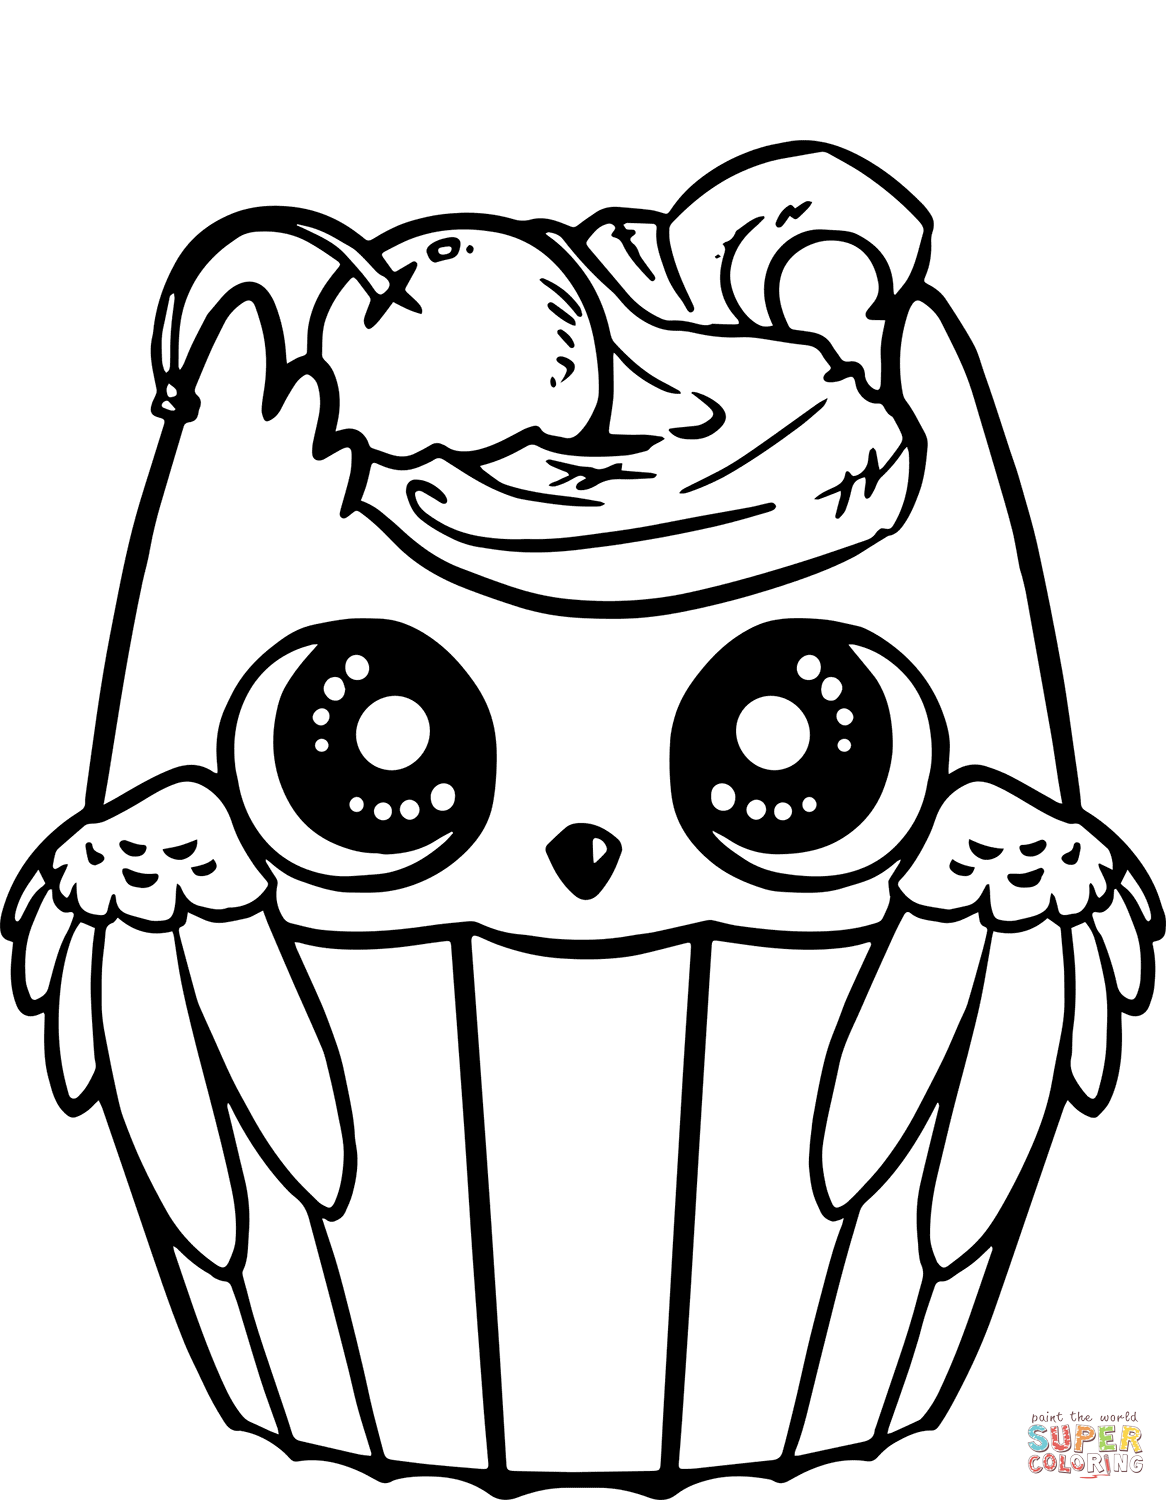 Cute Owl Cupcake Coloring Page Free Pr 2635533 Png Images Pngio